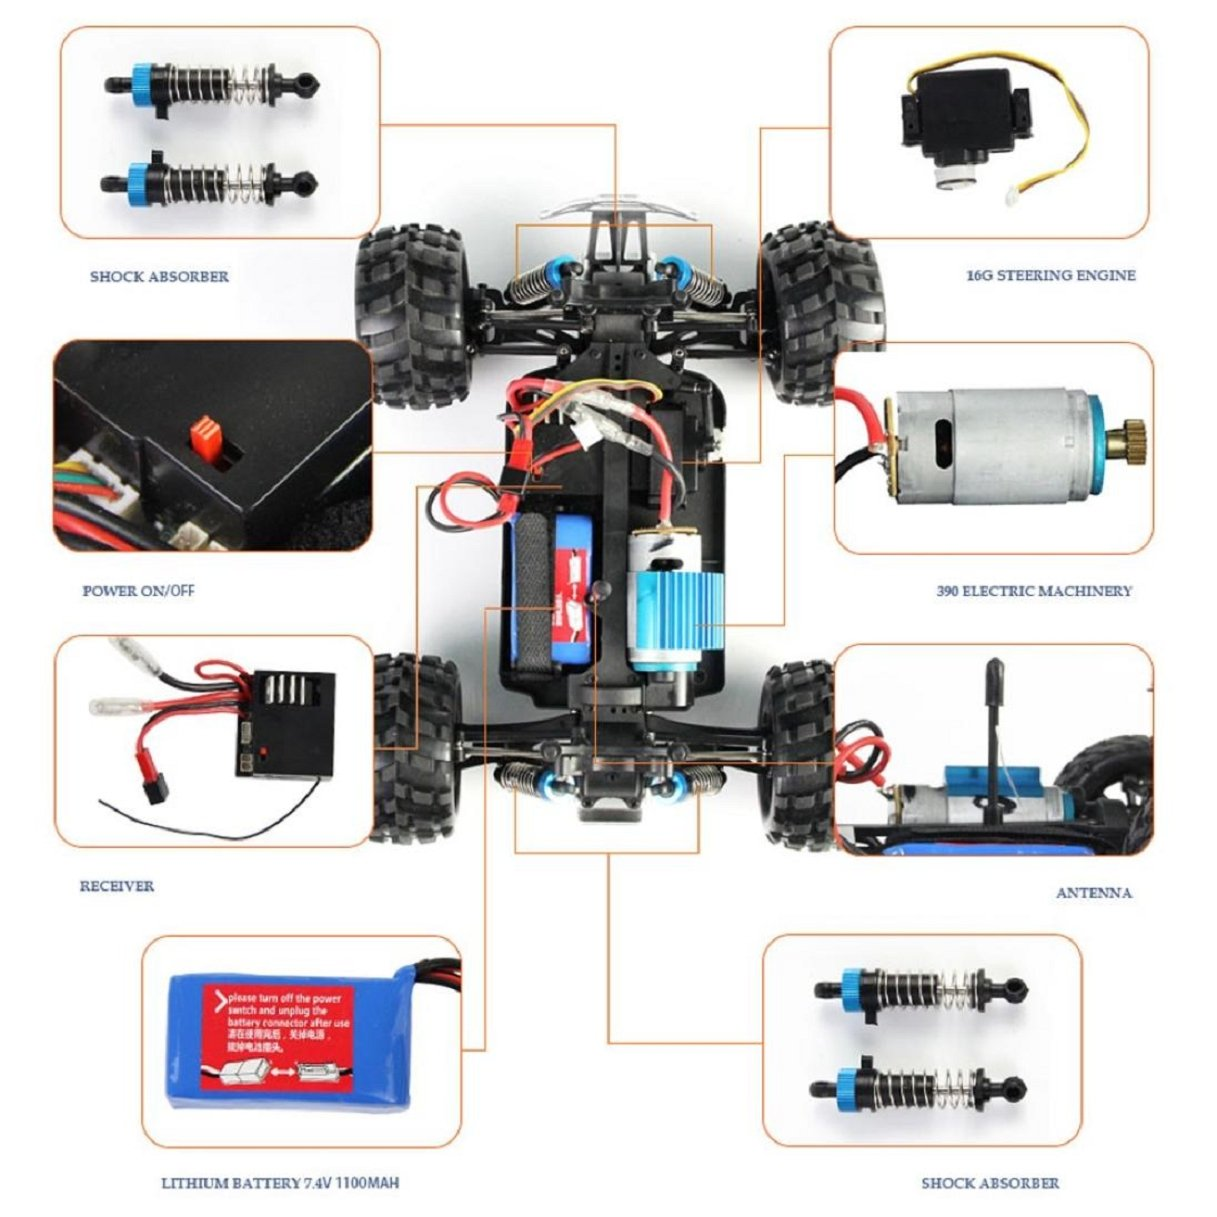 Fuel Cell Car Diagram moreover Duplex Wire Splice as well Xs 750 Bak En Braad 30 moreover Race Car Themes further Tda2030a Power  lifier Schematic Diagram. on simple race car wiring diagram